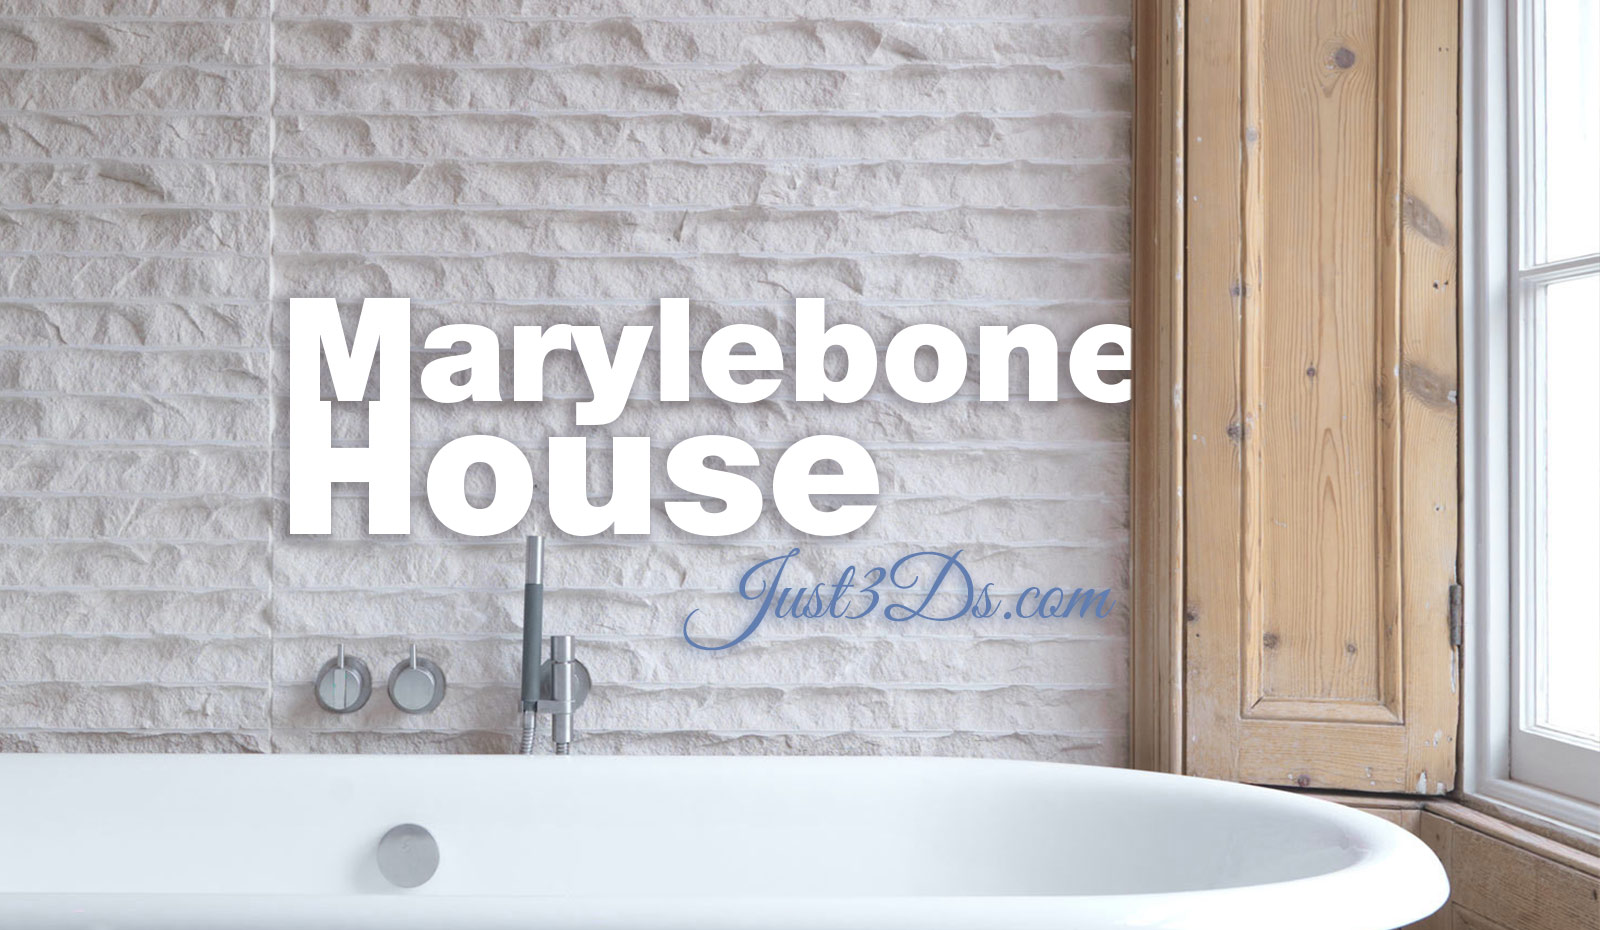 Marylebone-House-just3ds.com